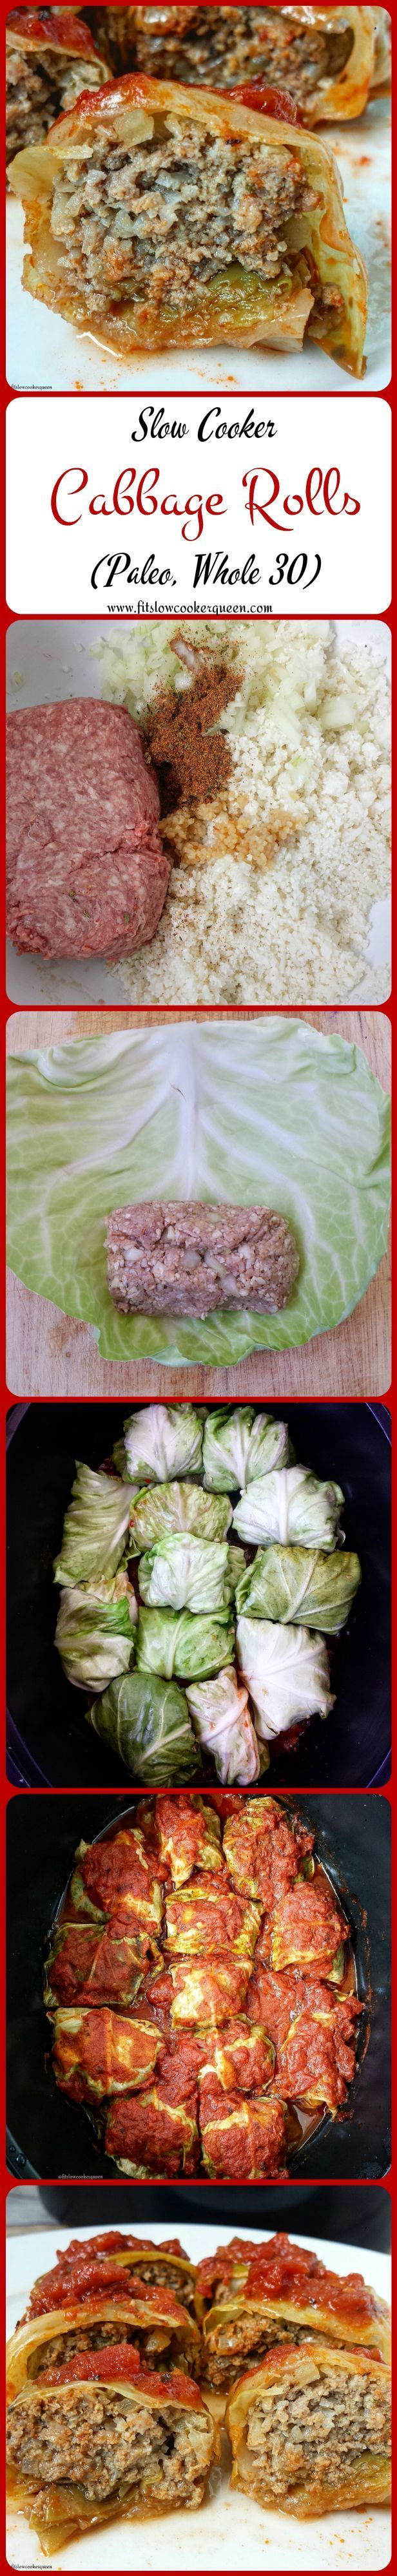 20 Slow Cooker Healthy Cabbage Roll Recipes! Many are low-carb, paleo, and whole 30 compliant slow cooker version of cabbage rolls, with some vegetarian options too. Enjoy cabbage rolls any day of the week with these recipes.